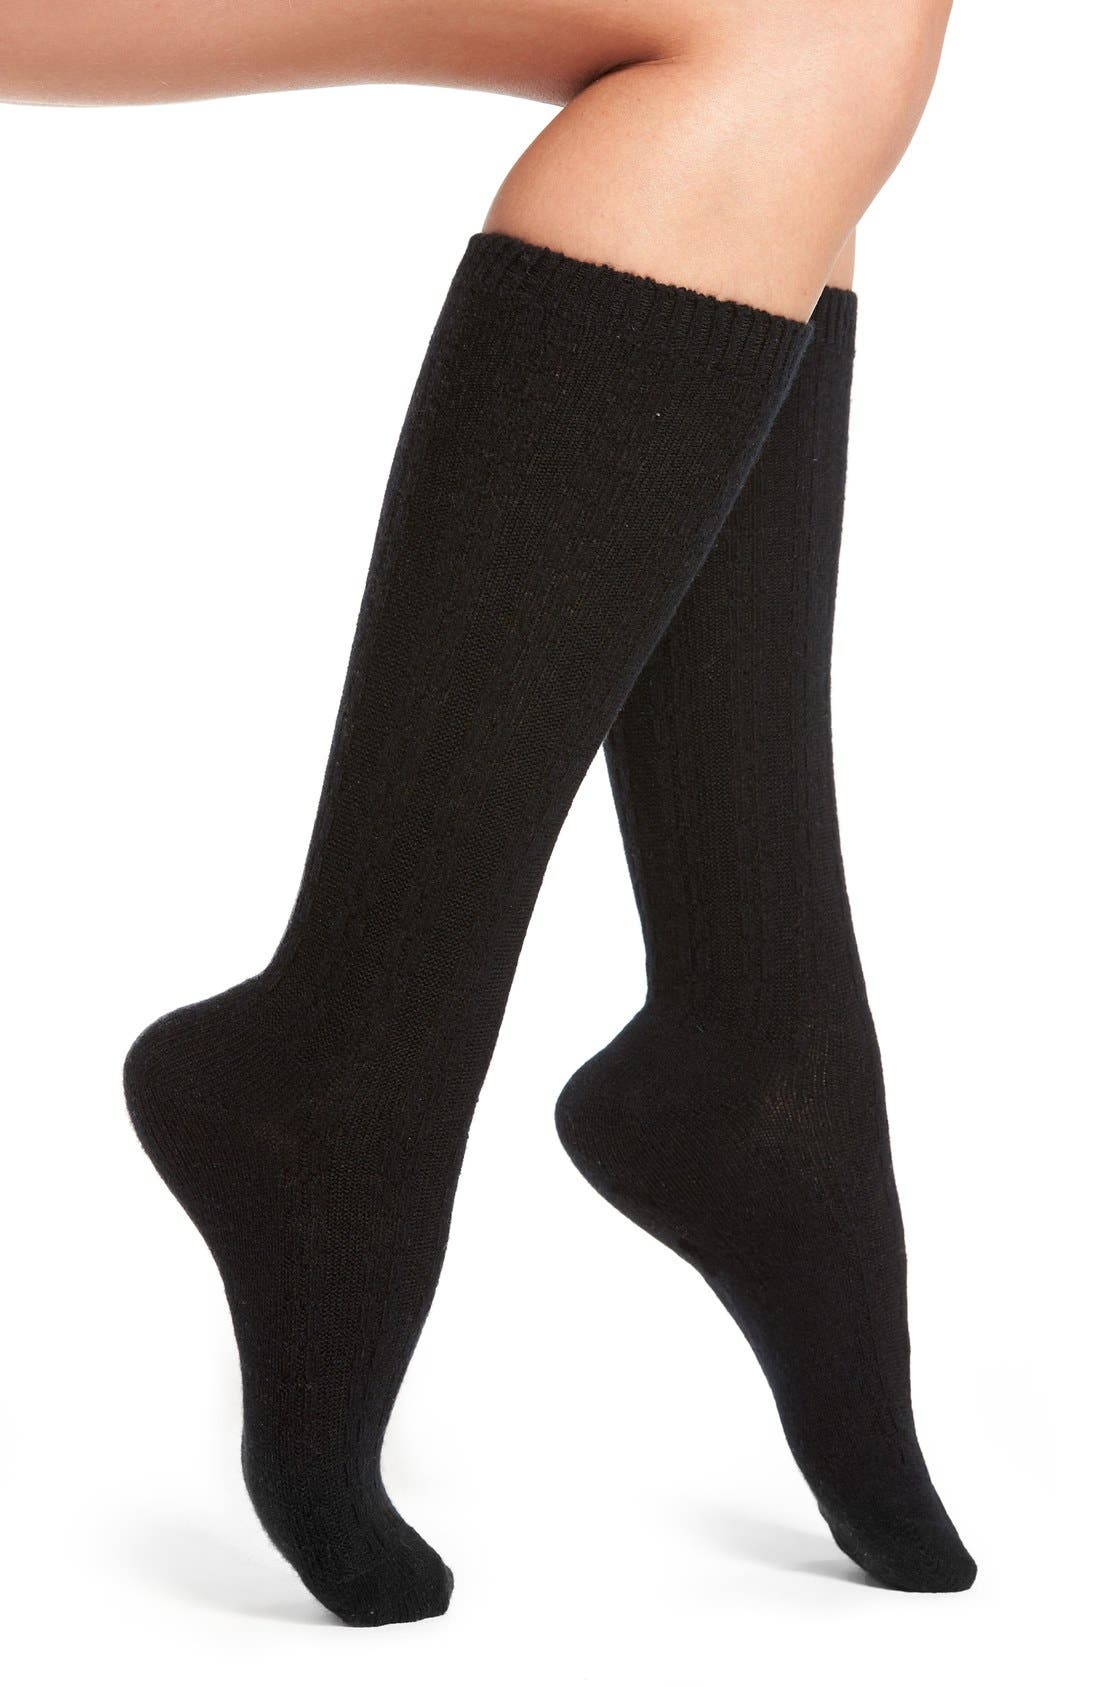 Stretch Cashmere & Wool Socks,                             Main thumbnail 1, color,                             001